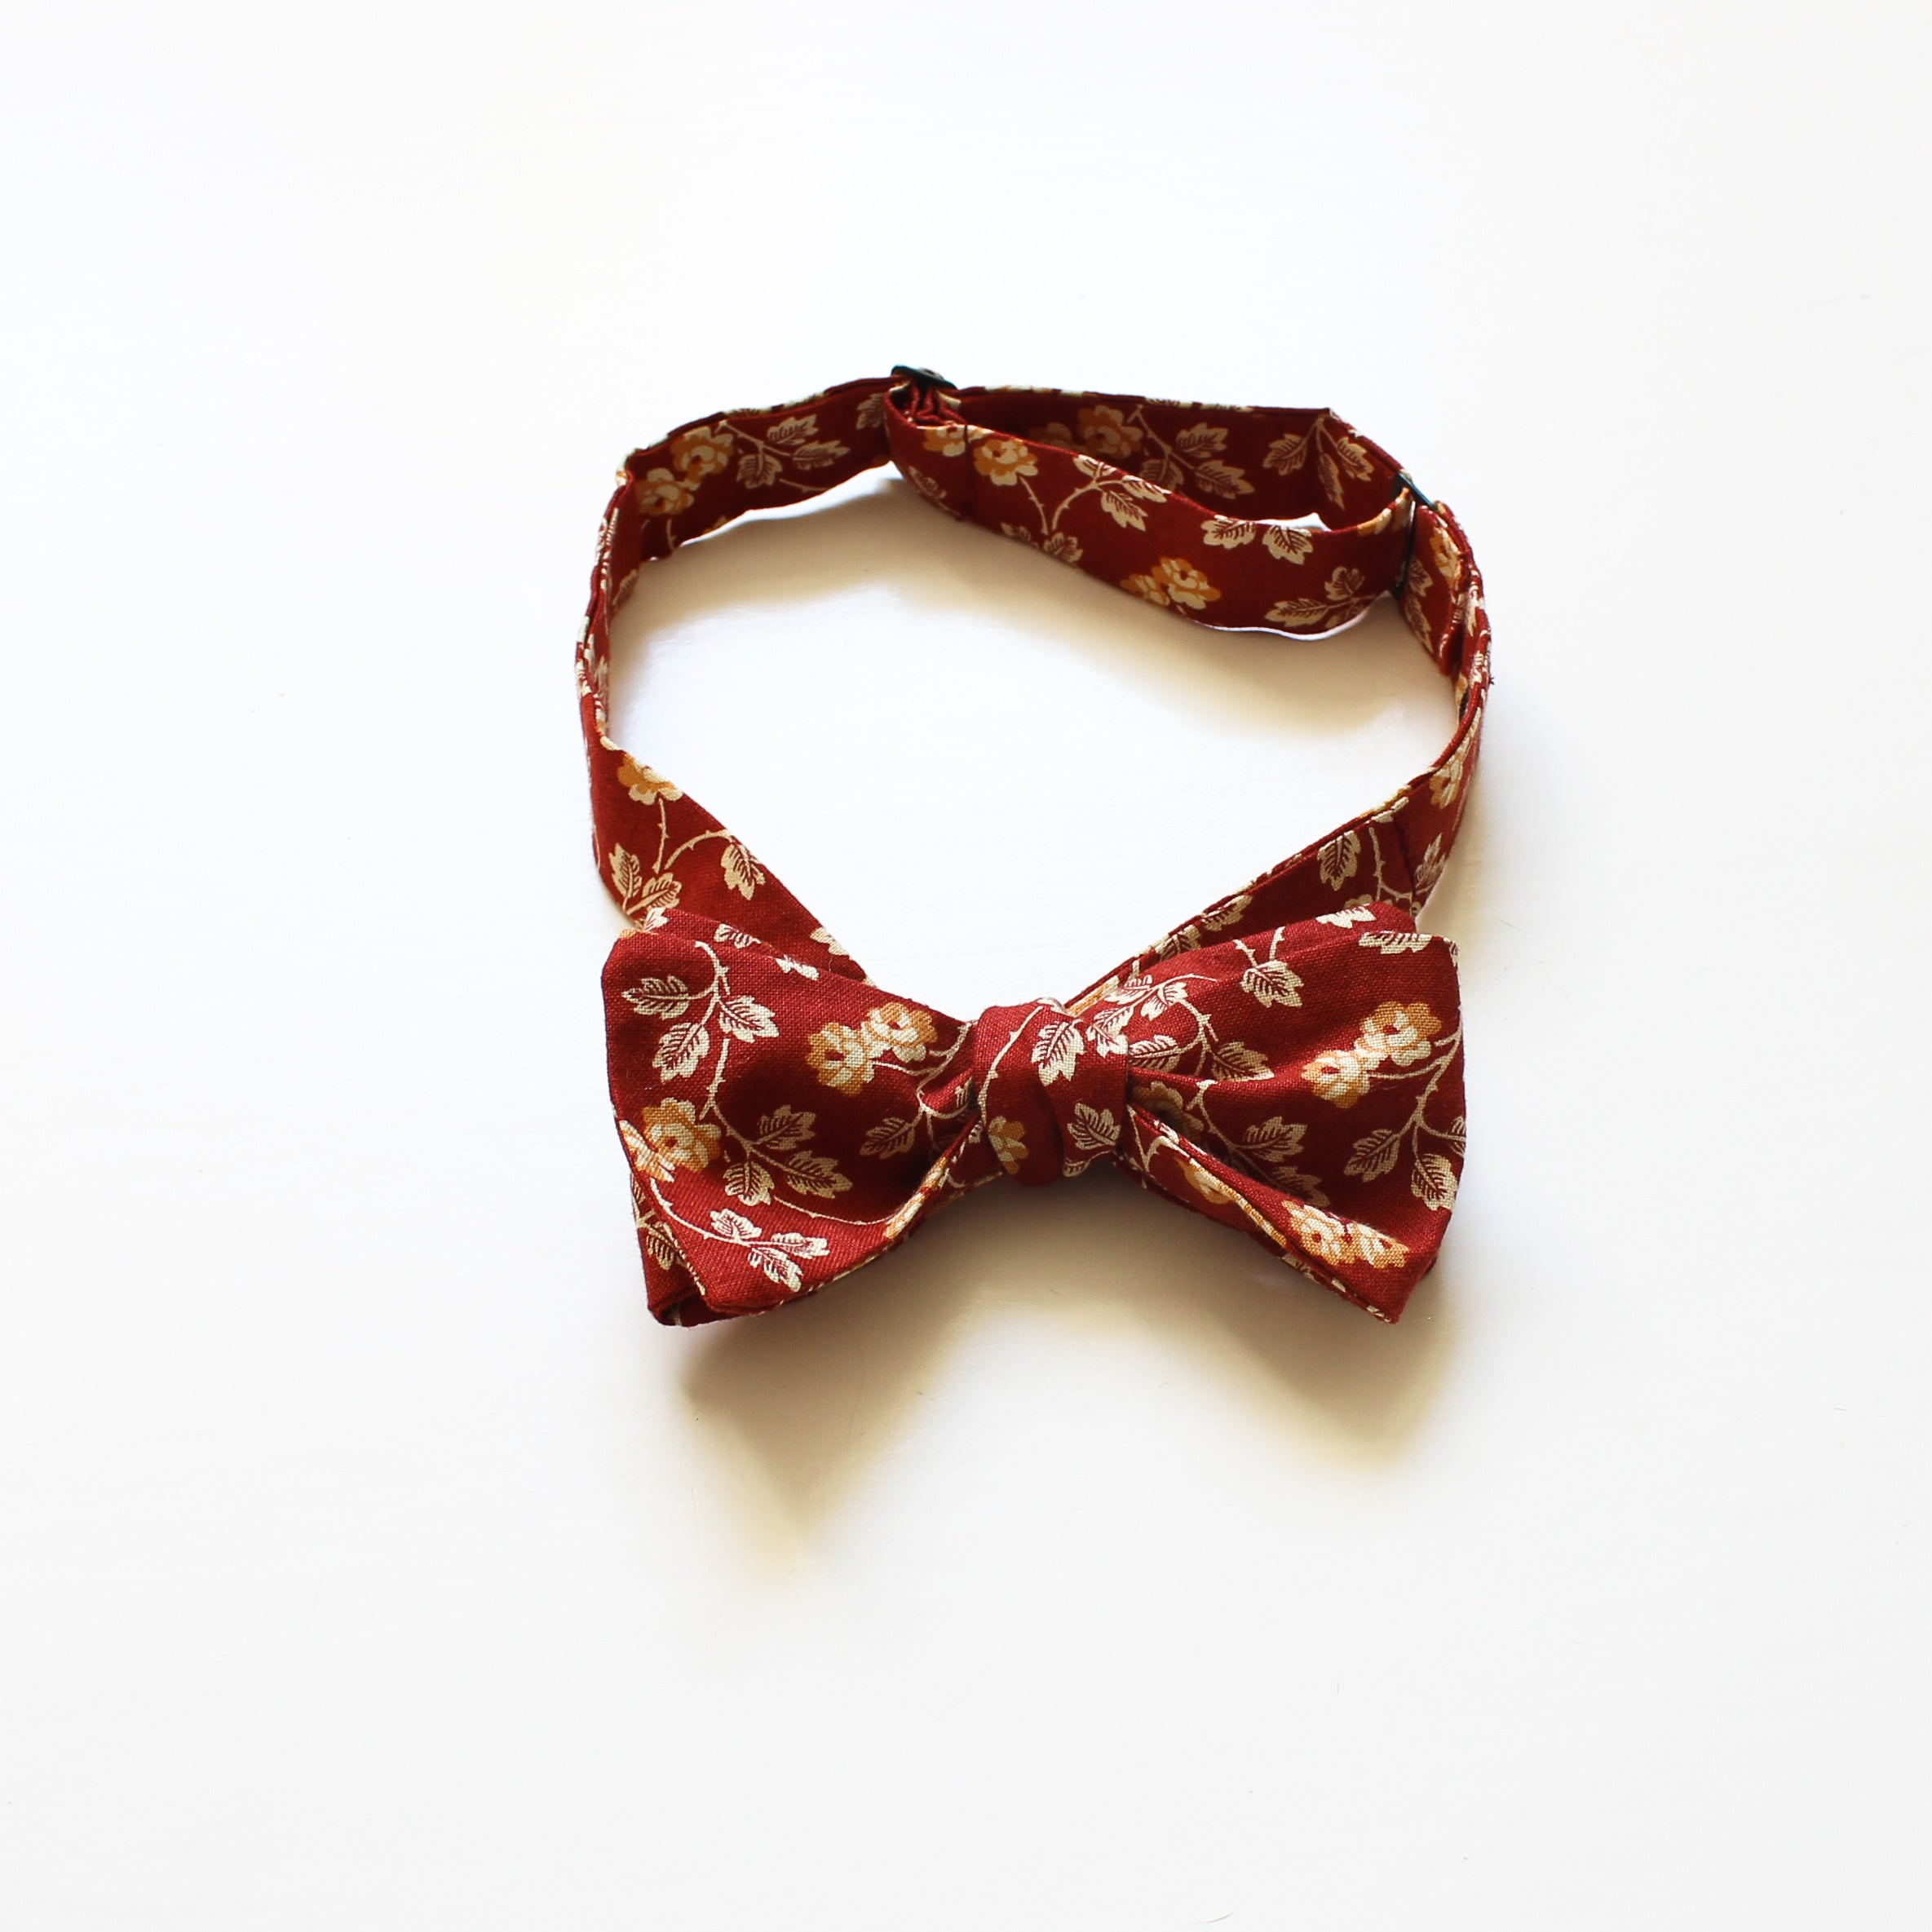 Marigold Bow Tie in Rust